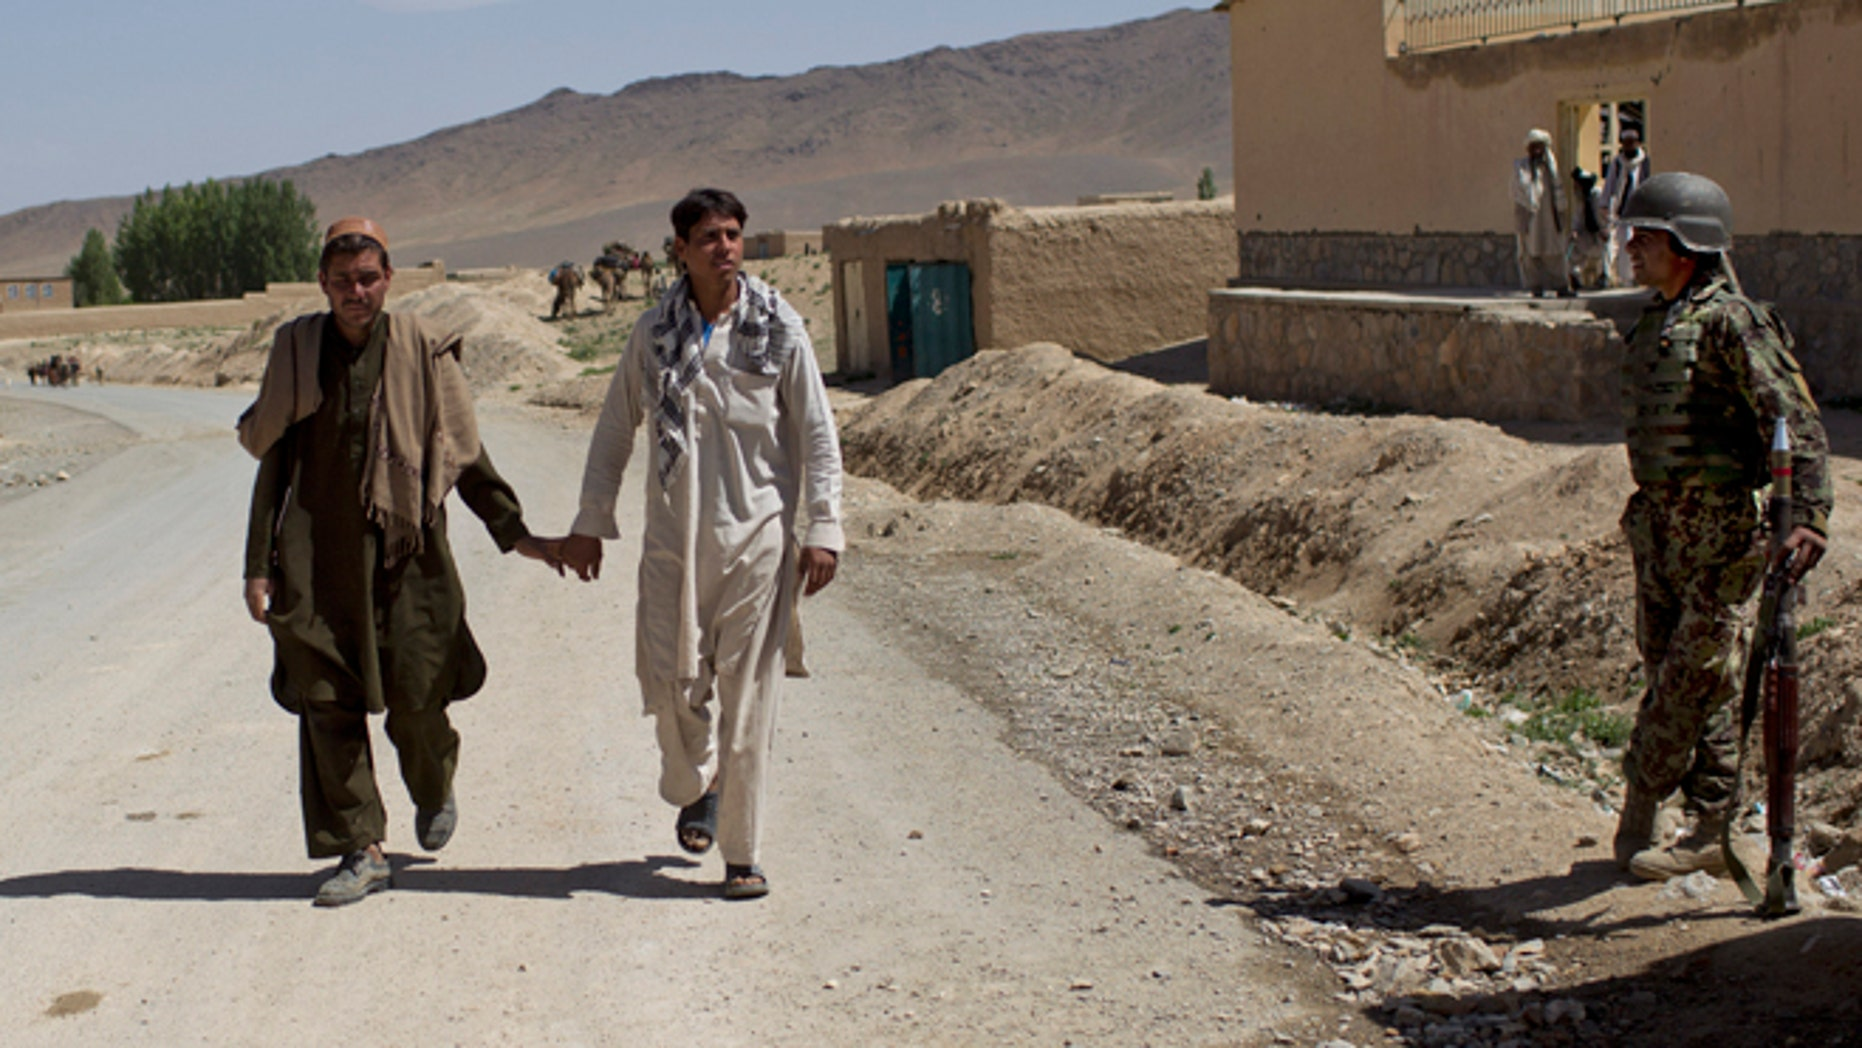 May 17, 2012, Two men walk hand-in-hand past an Afghan National Army soldier in east Afghanistan.